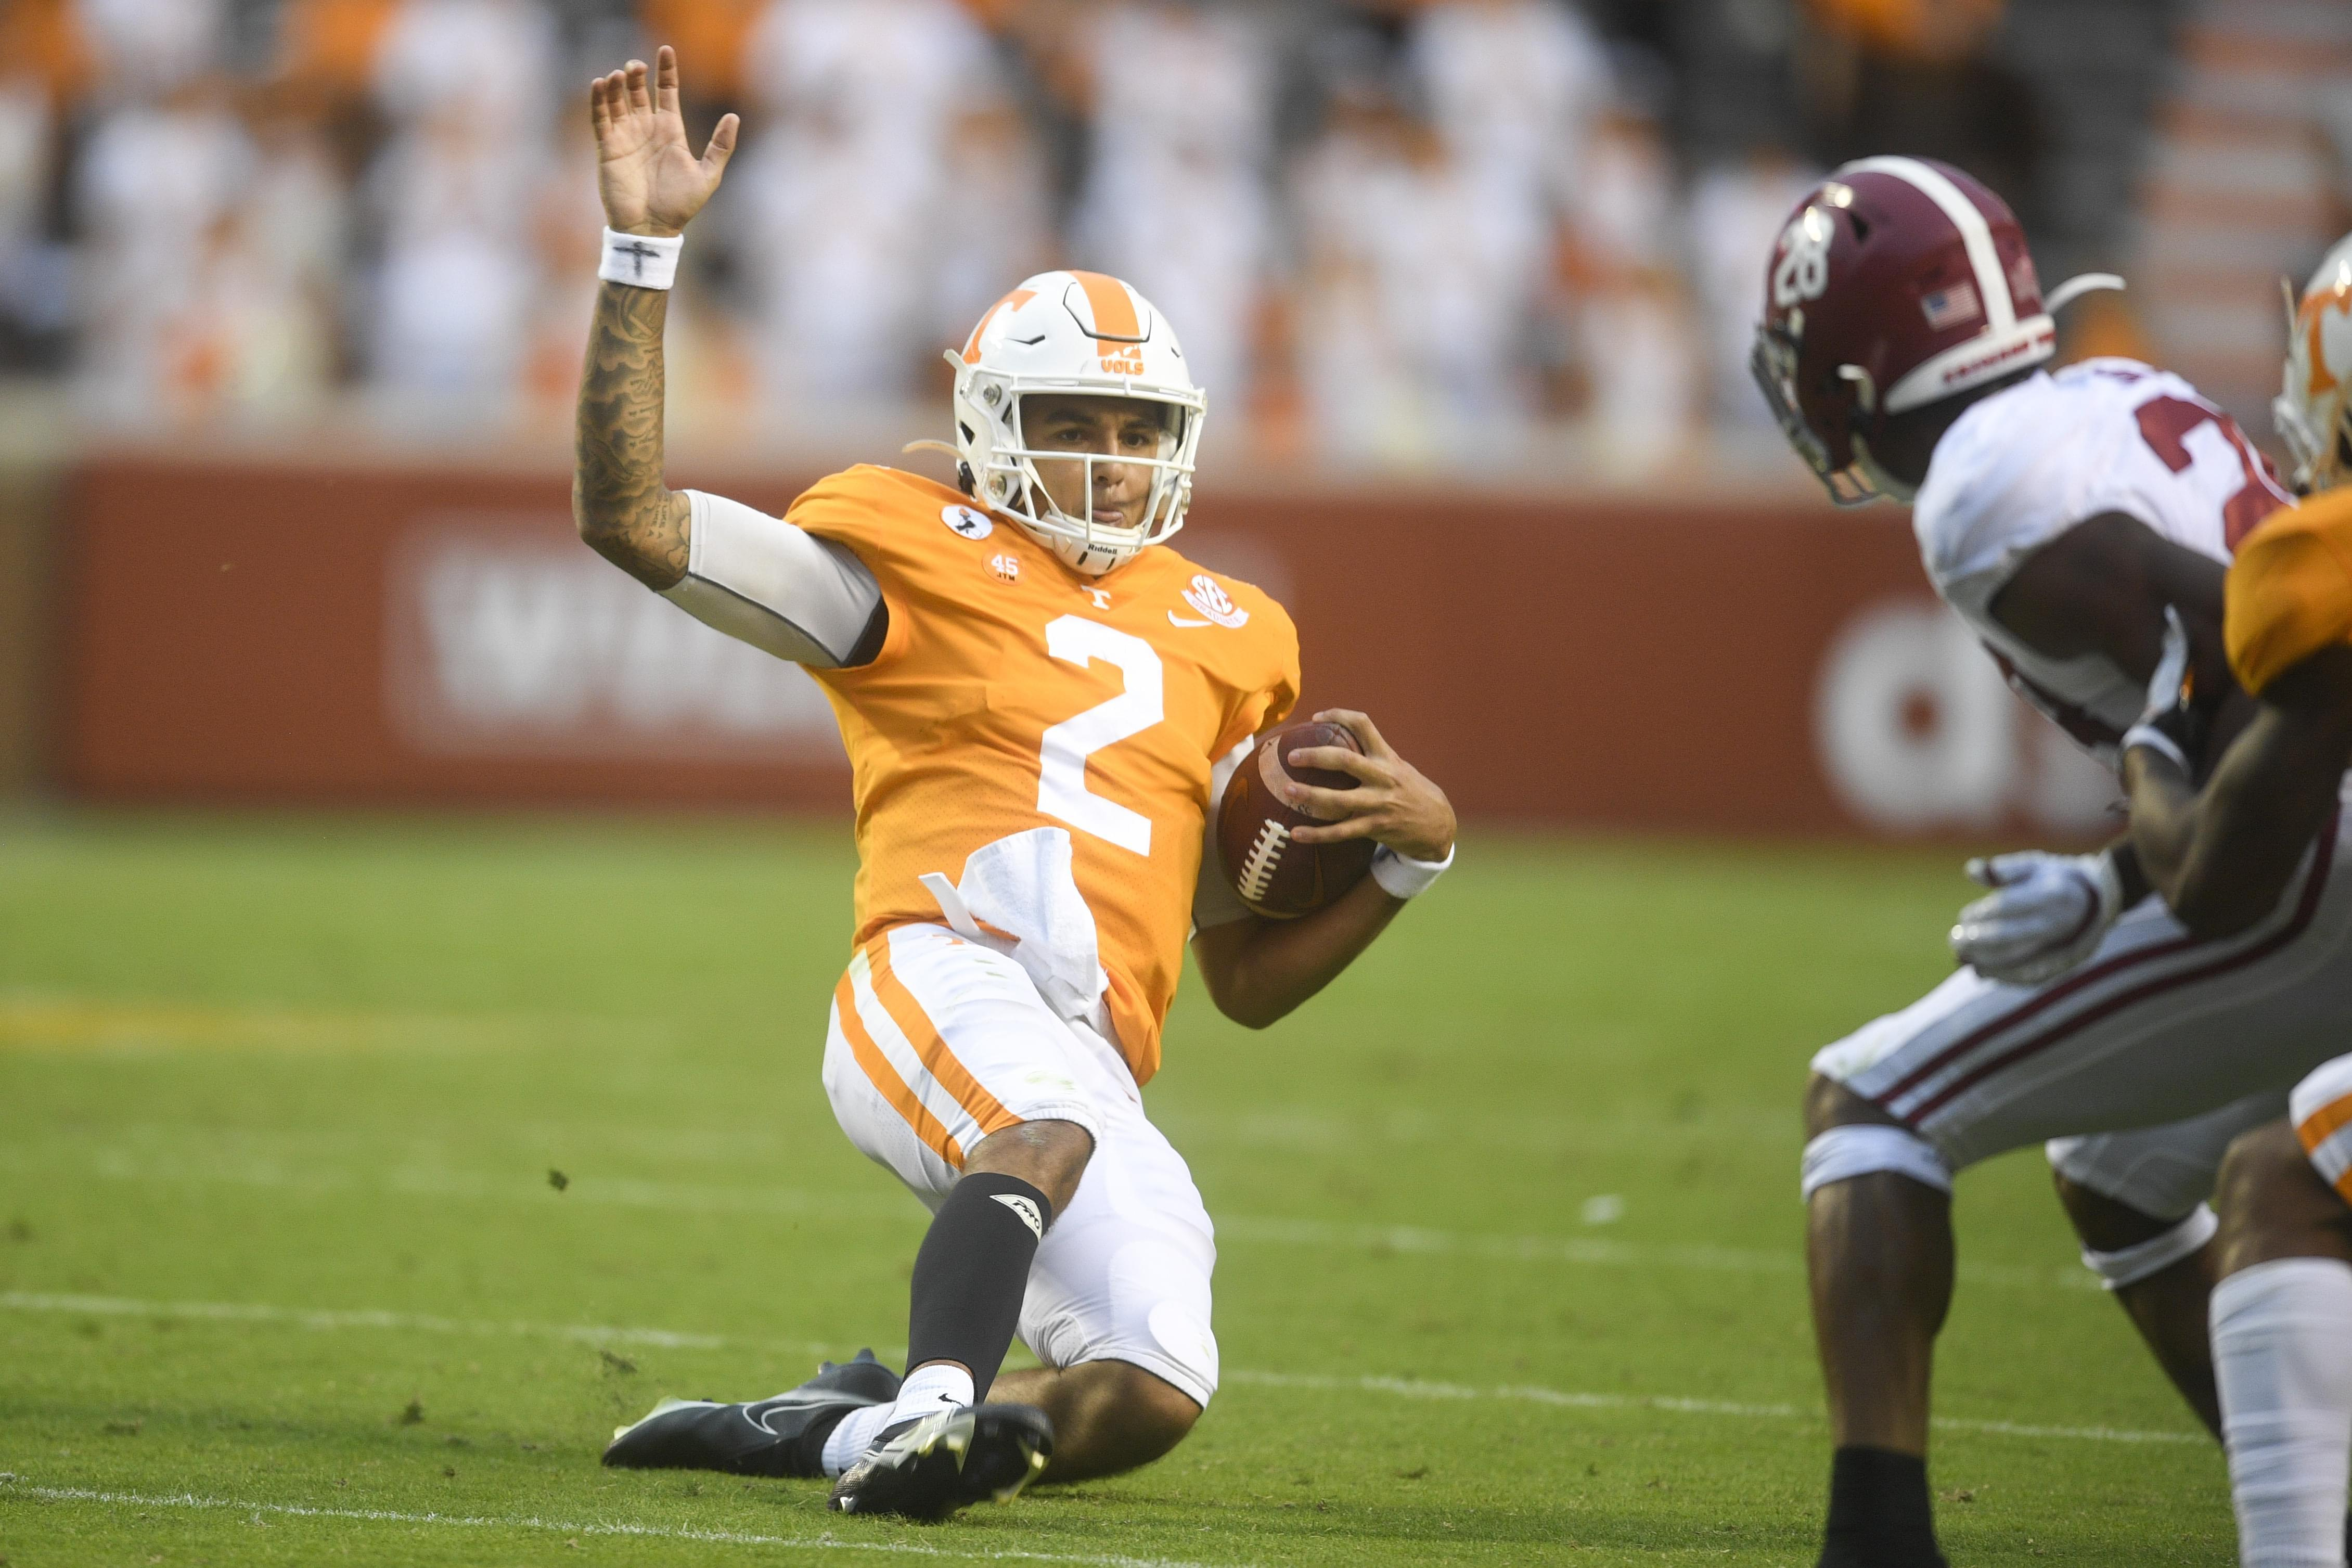 Week 7 SEC football score predictions; a near must-win game for Vols, UF/UGA grudge match